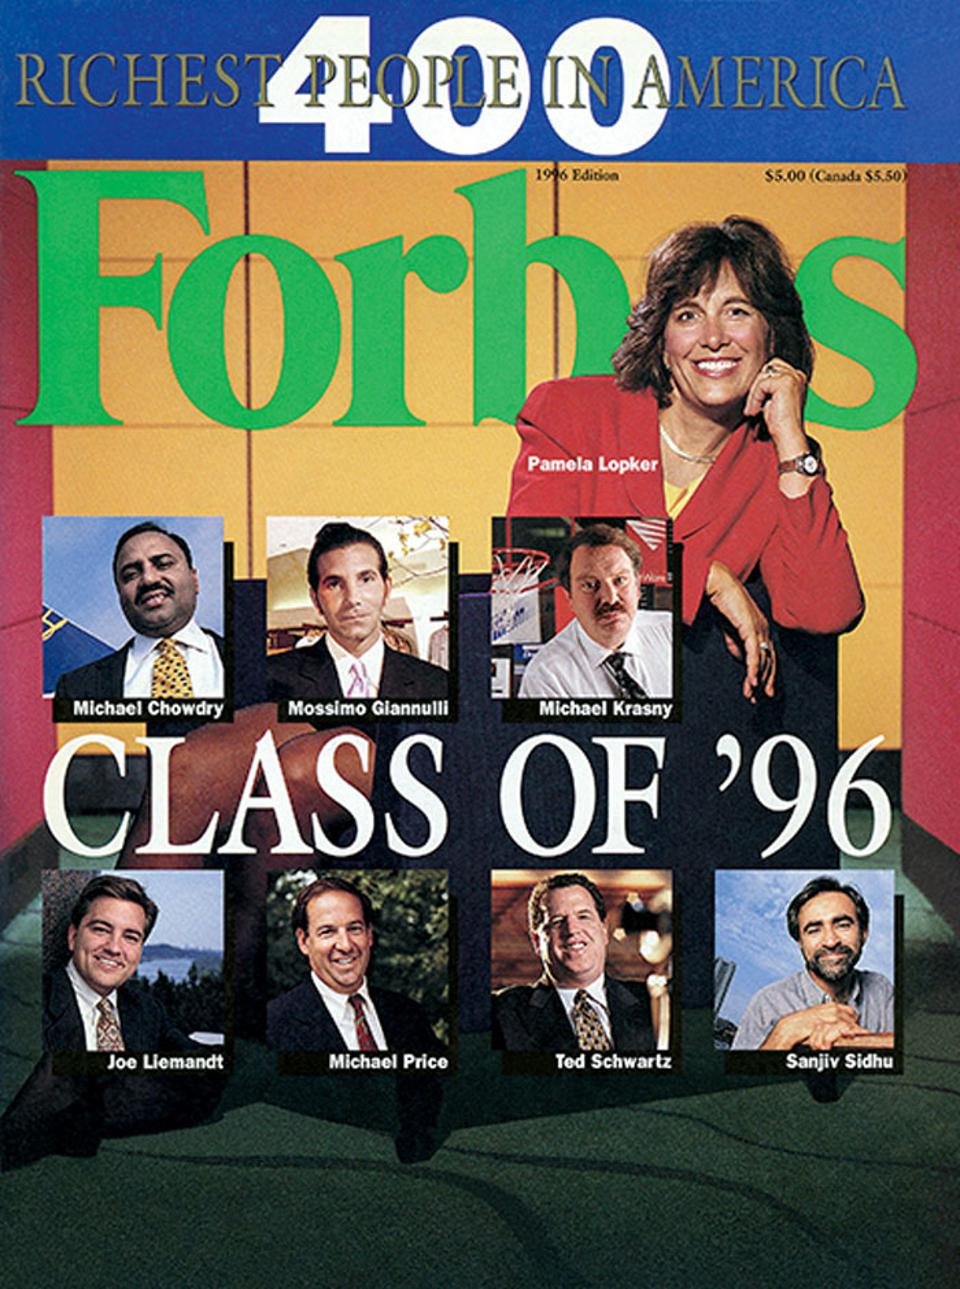 Joe Liemandt made the cover of Forbes twice in 1996, including that year's Forbes 400 issue. He's at the bottom left.